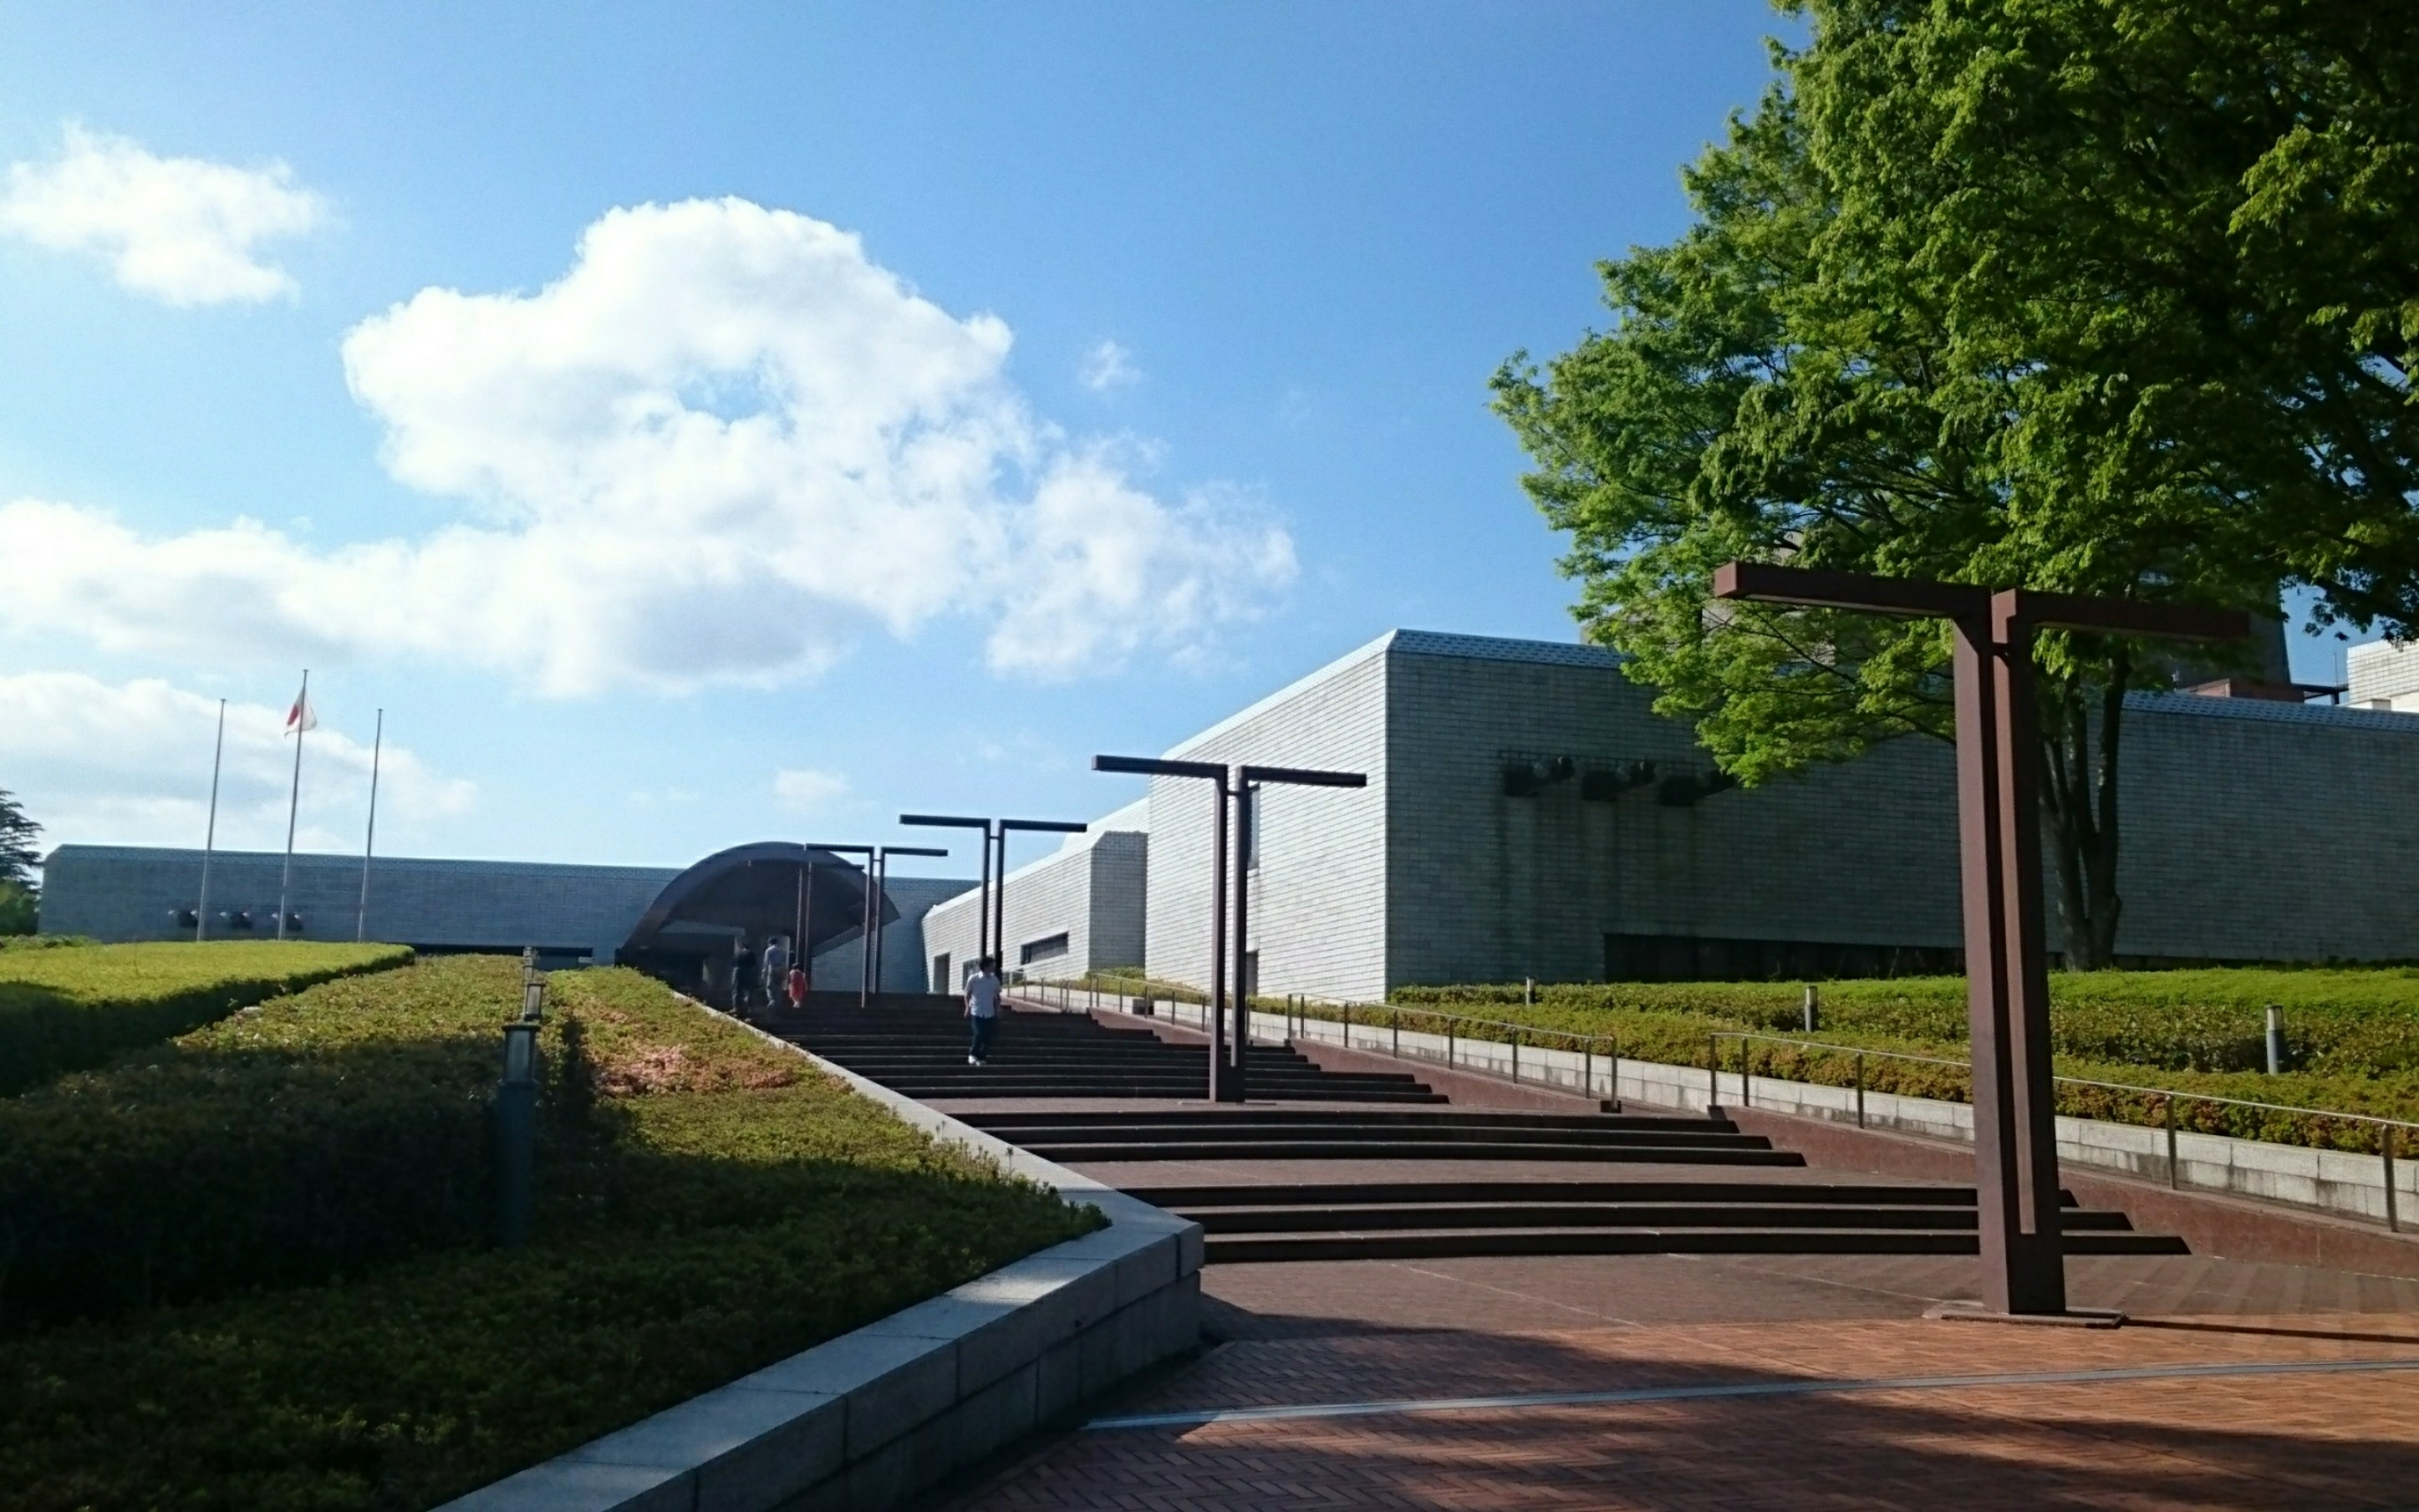 The National Museum of Japanese History(known popularly in Japanese as 歴博REKIHAKU)  The REKIHAKU located in the park,which is  only nationally operated and the largest museum of history and folklore in Japan.